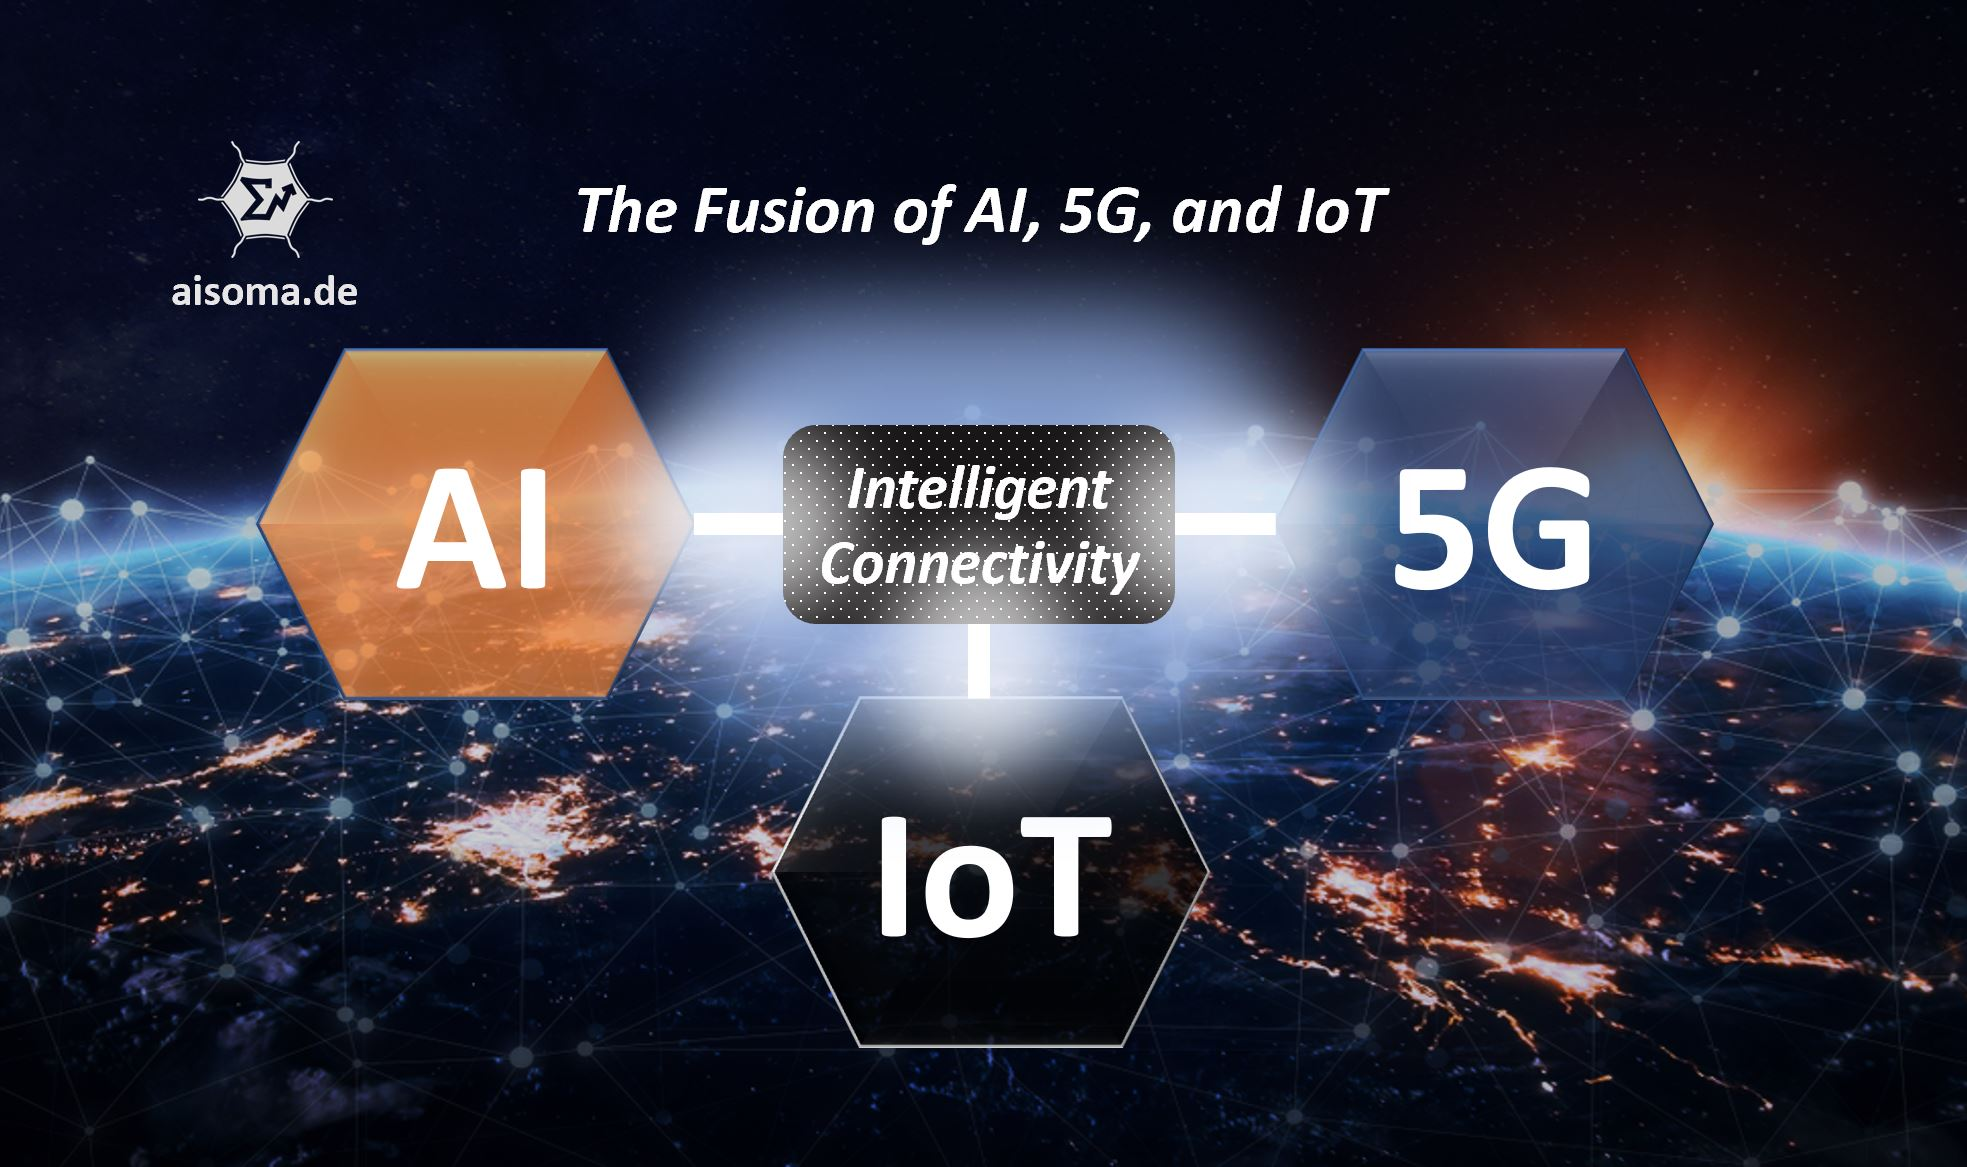 The fusion of AI 5G, and IoT